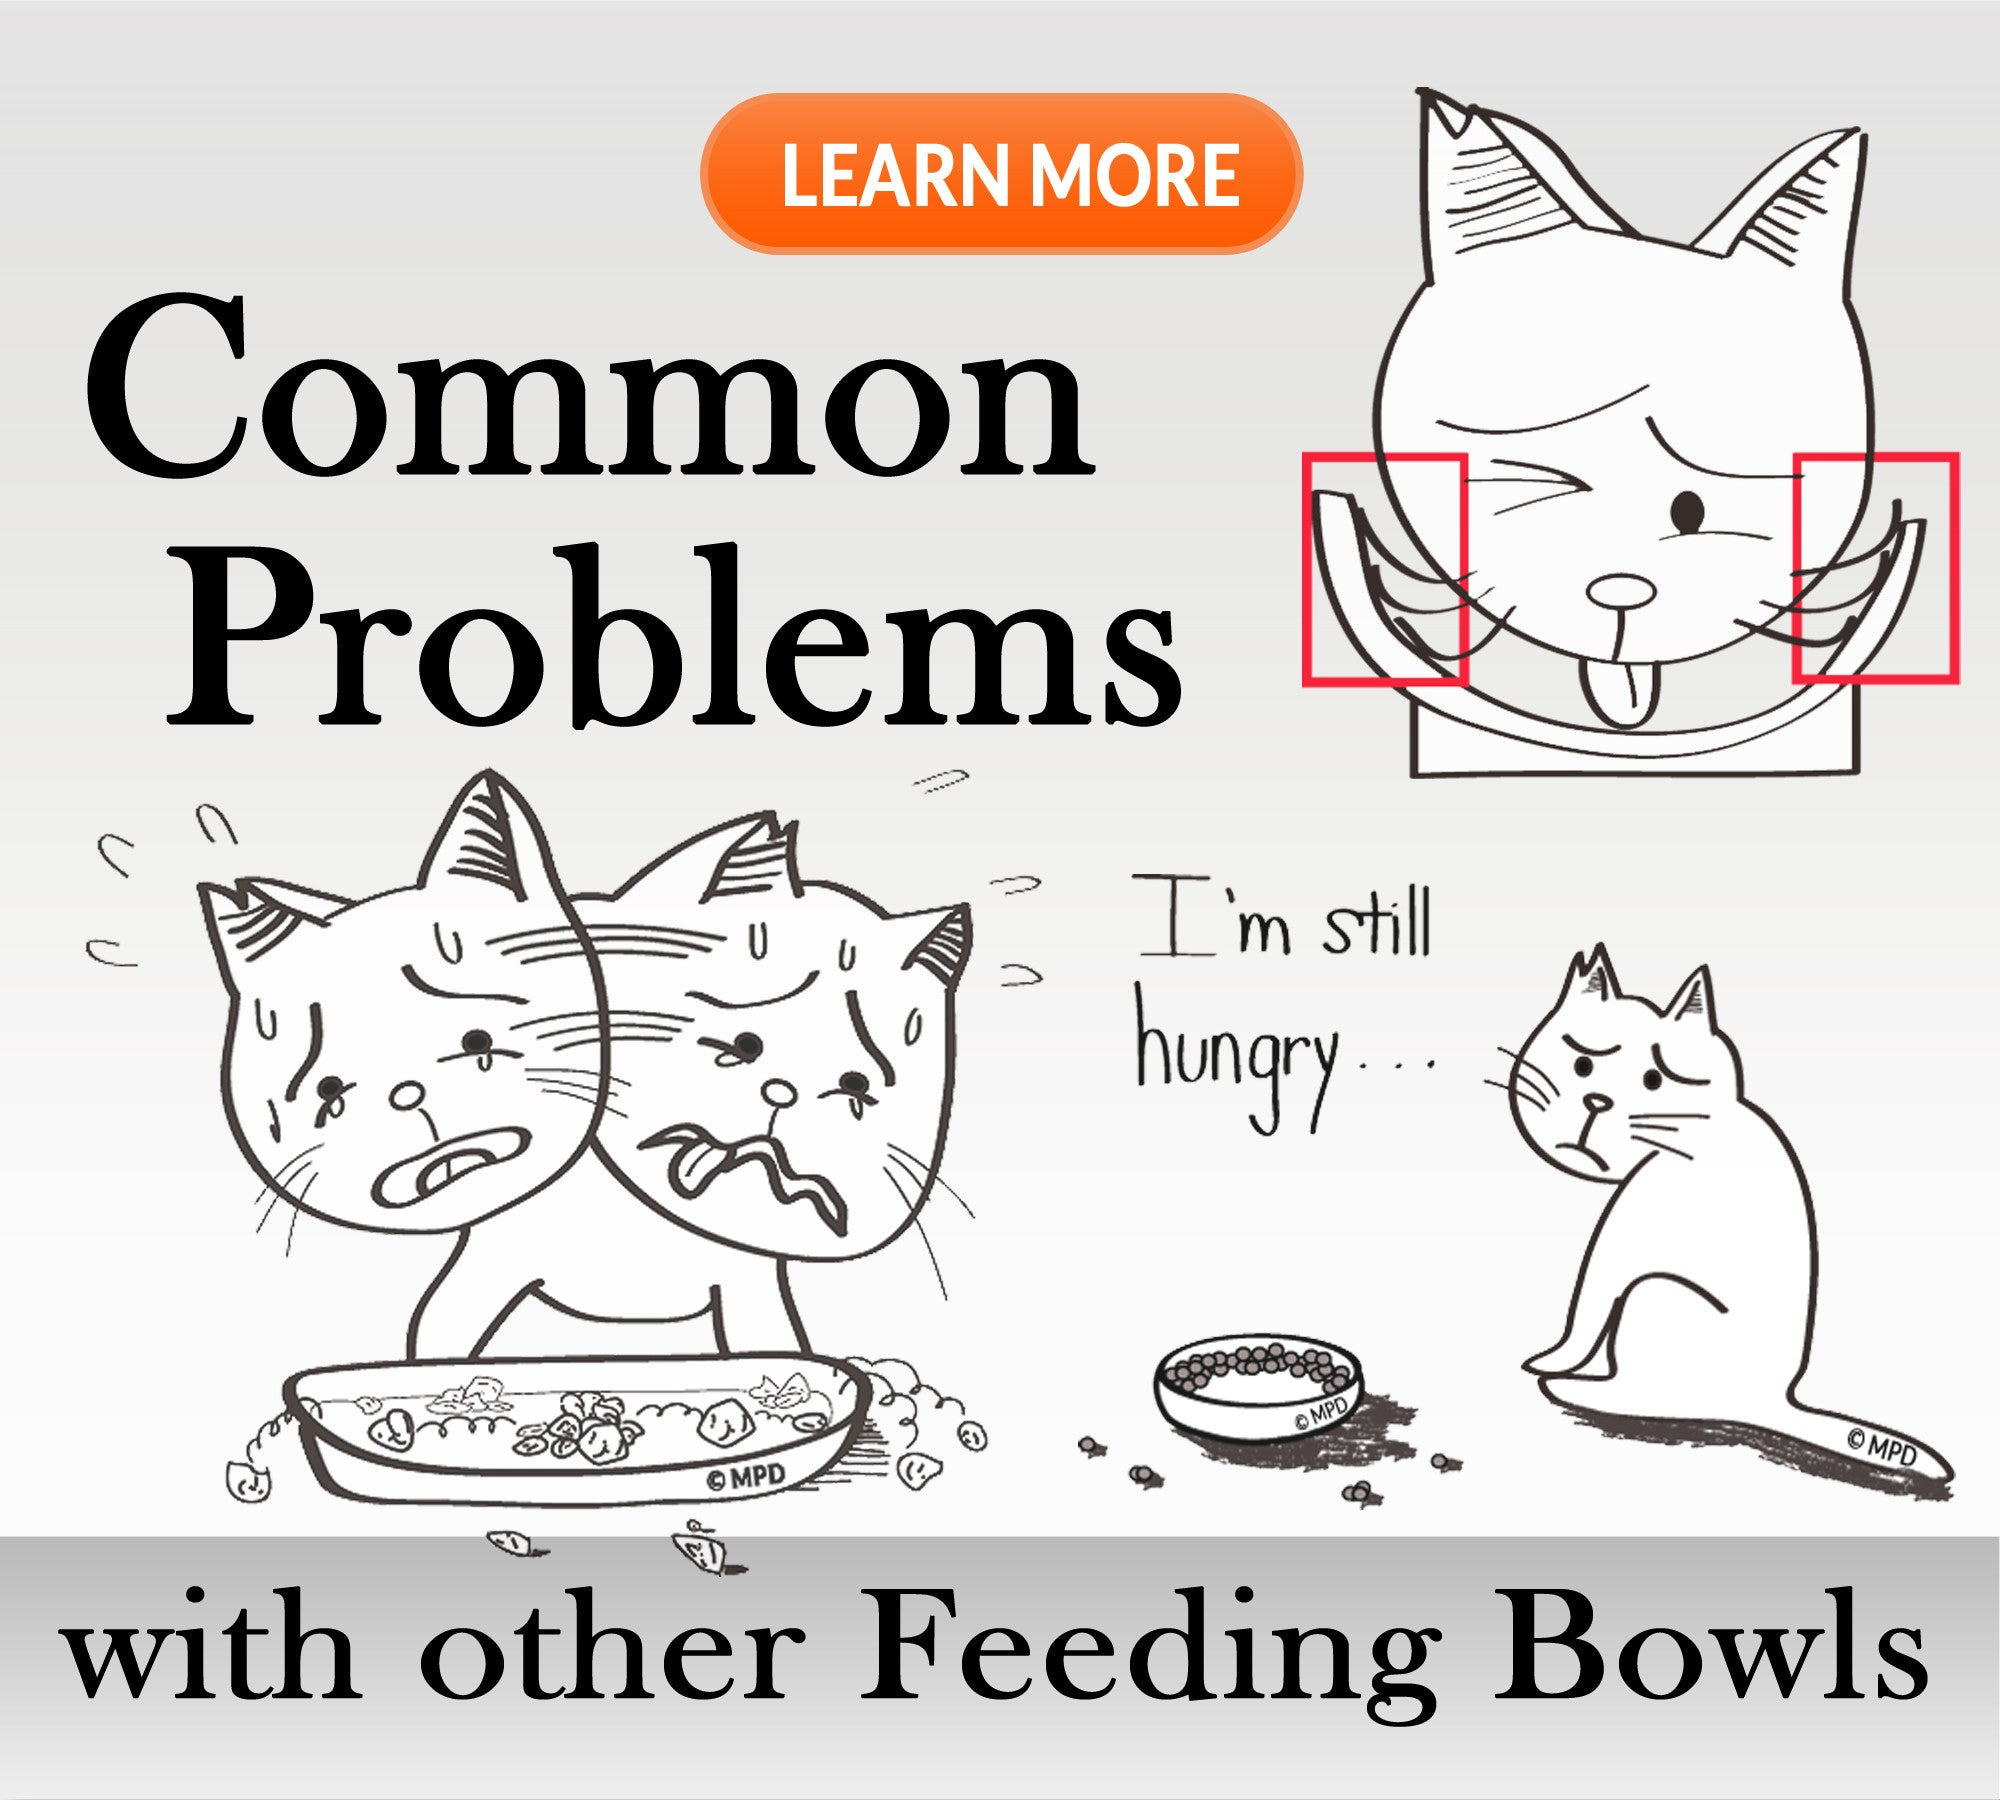 Common Problems with other feeding bowls